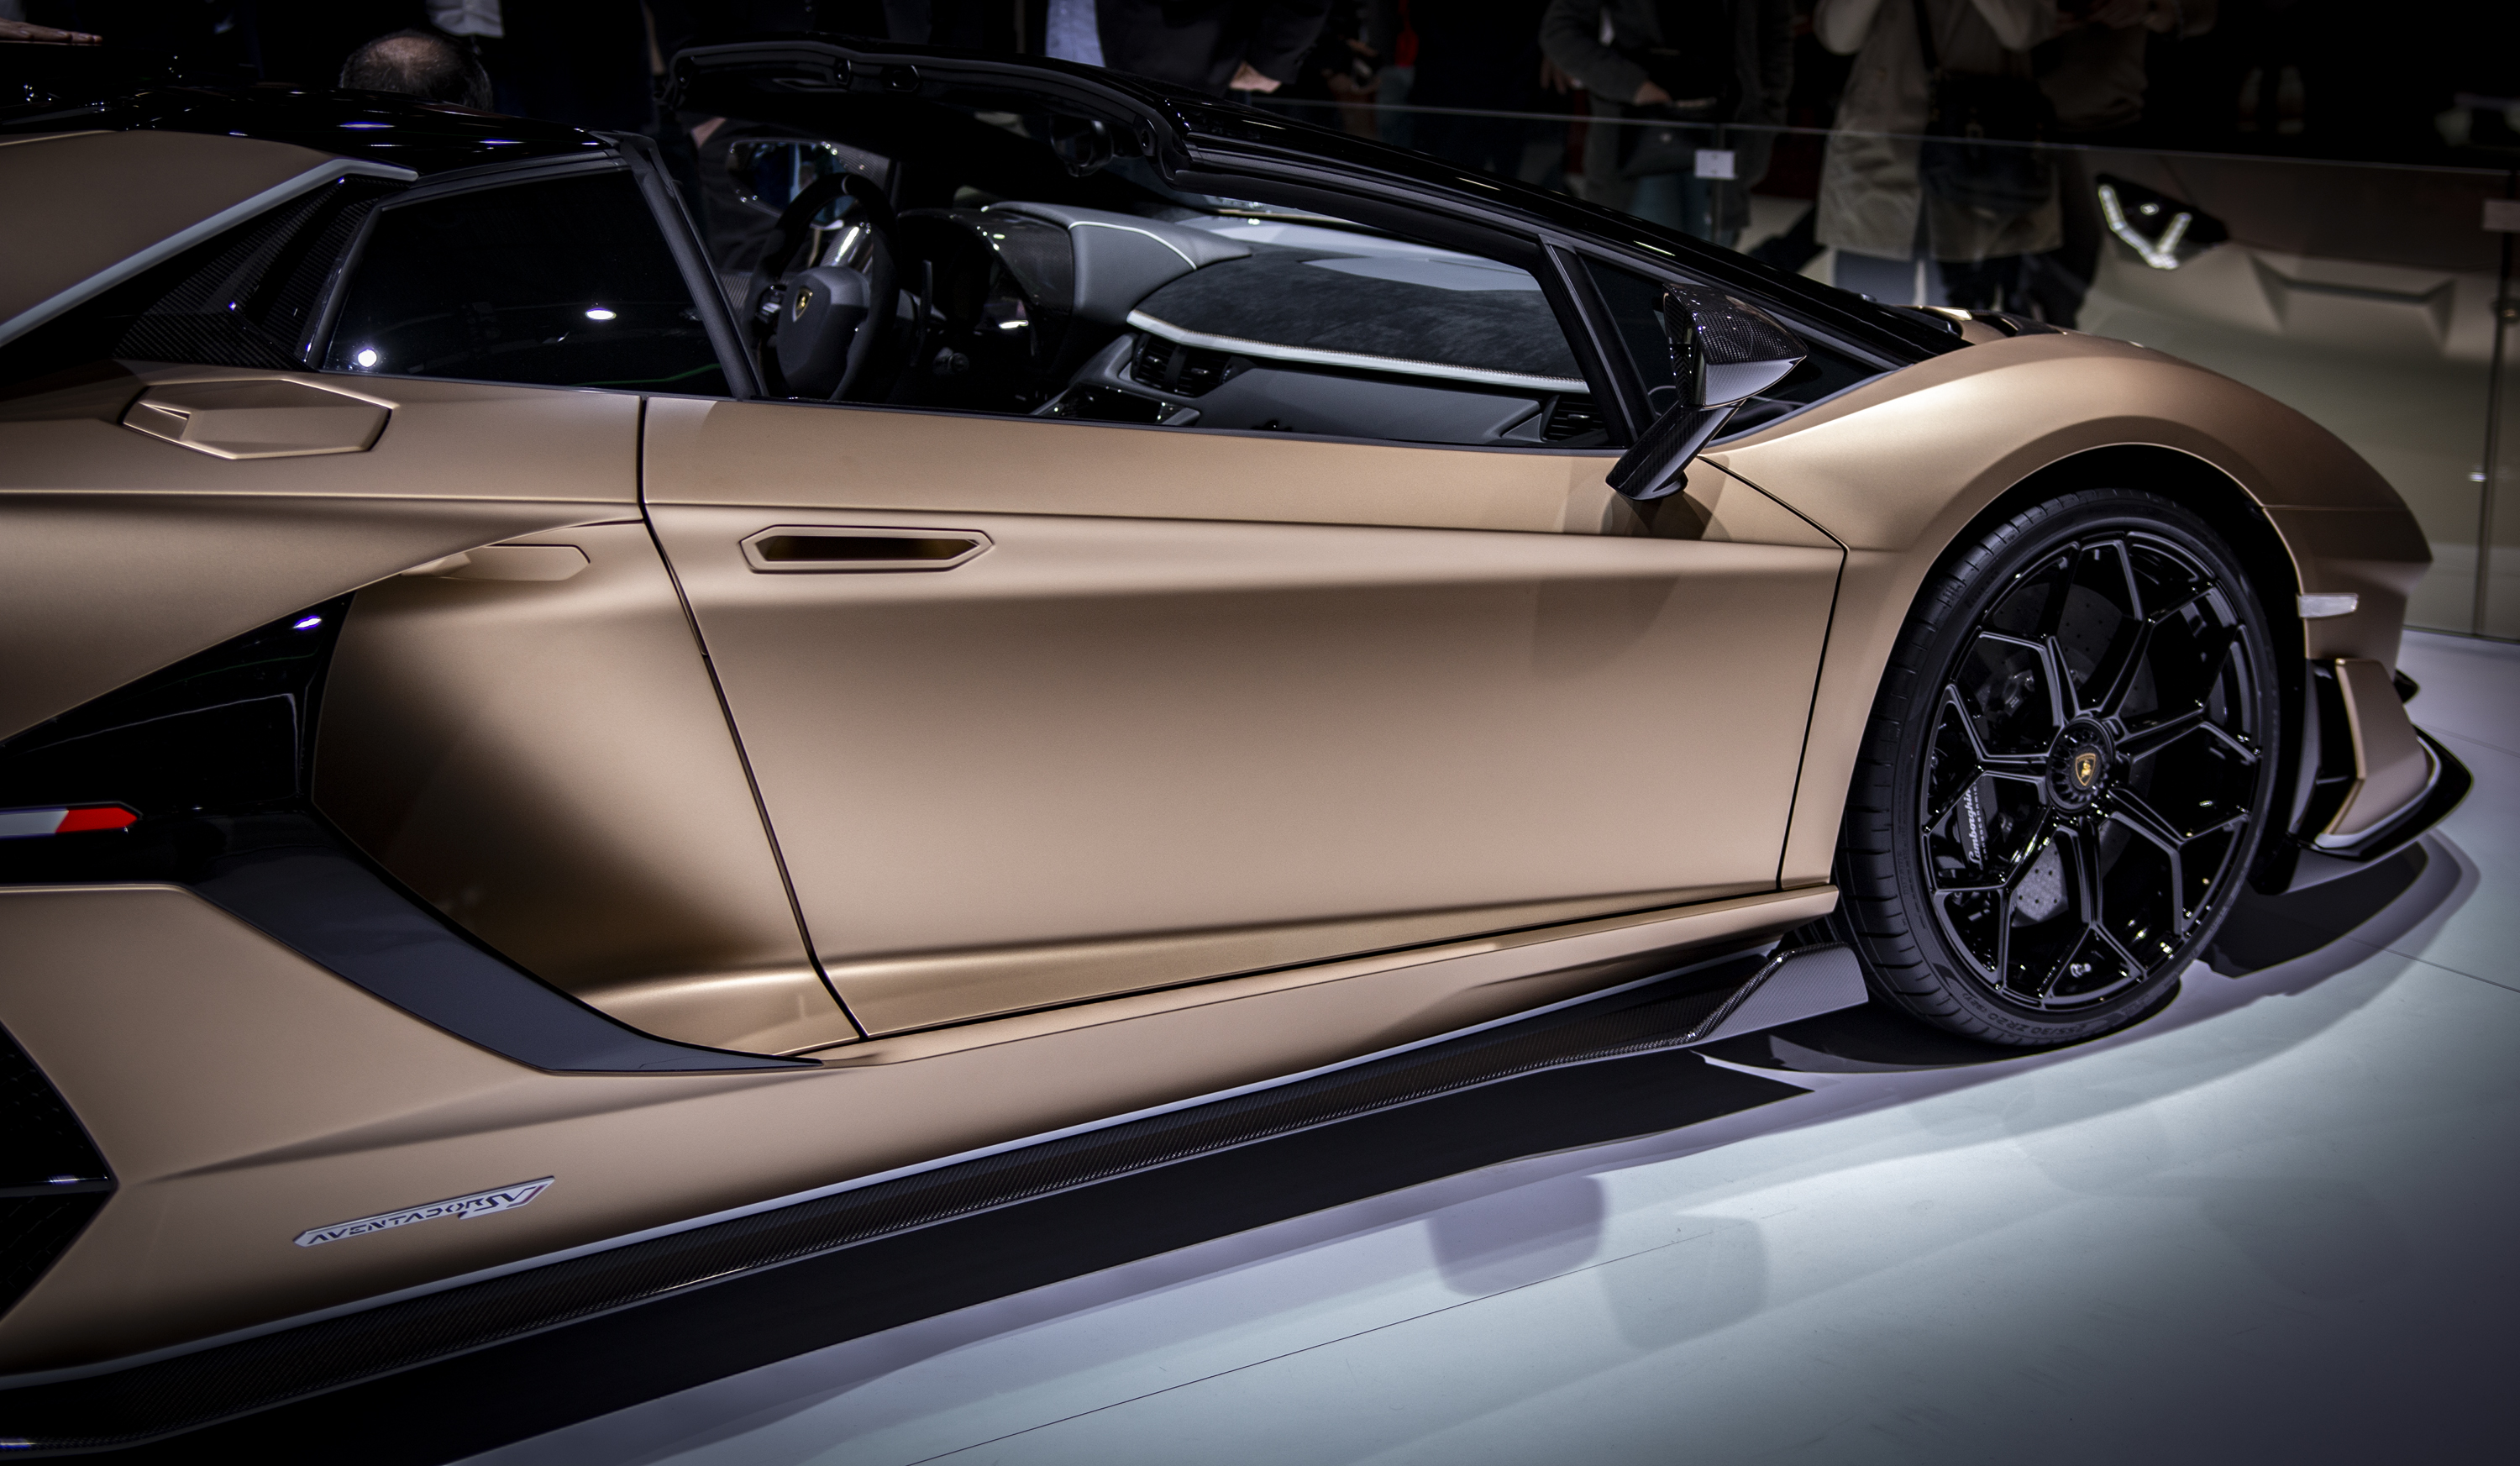 Free download high resolution image - free image free photo free stock image public domain picture -Motor show 2019 Geneva, Switzerland